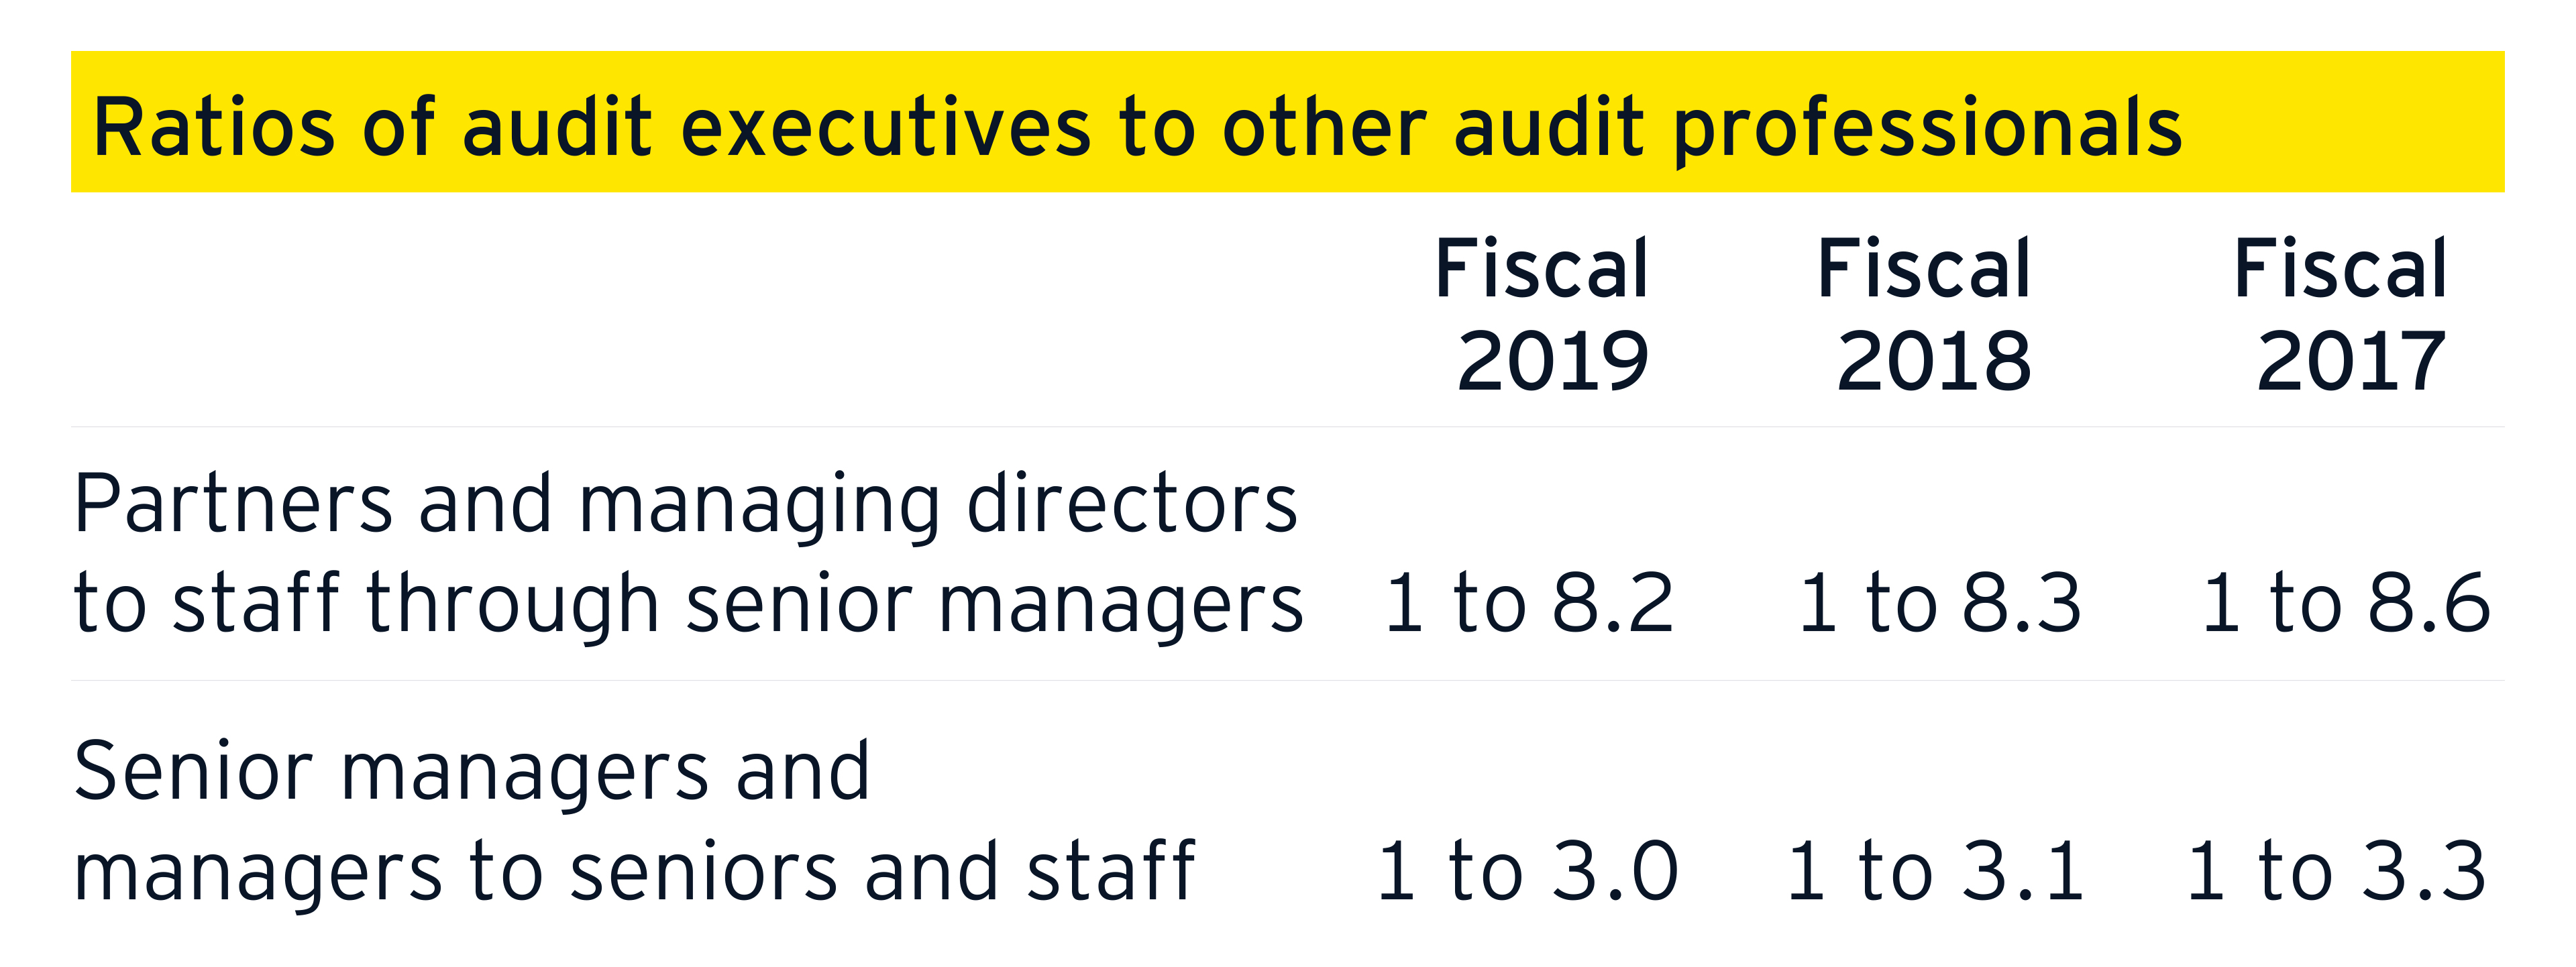 Ratios of audit executives to other audit professionals